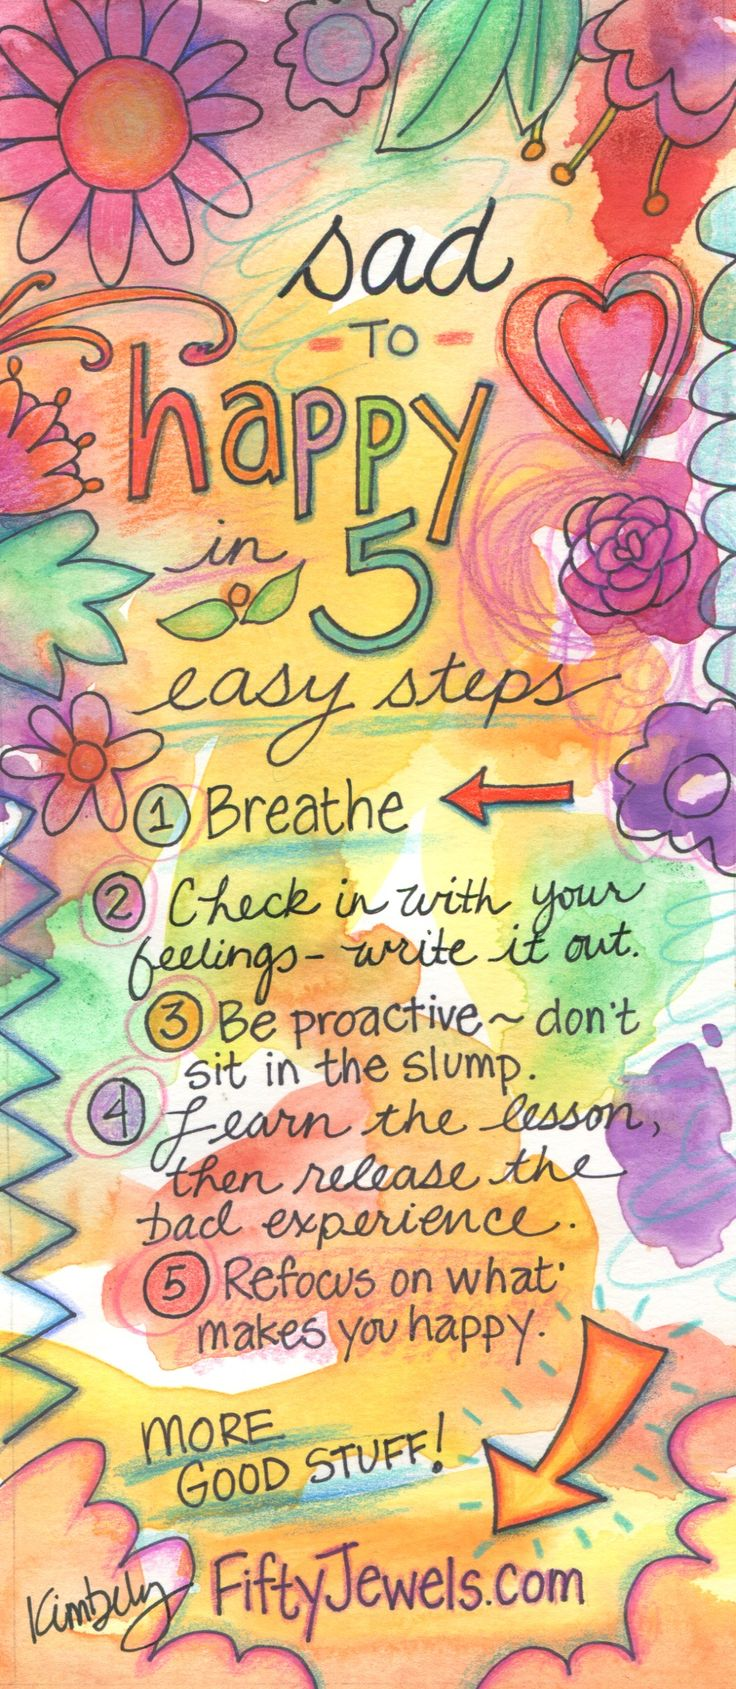 Use these quick tips to boost your mood and get back to your sunny self! Click to learn more great action steps!